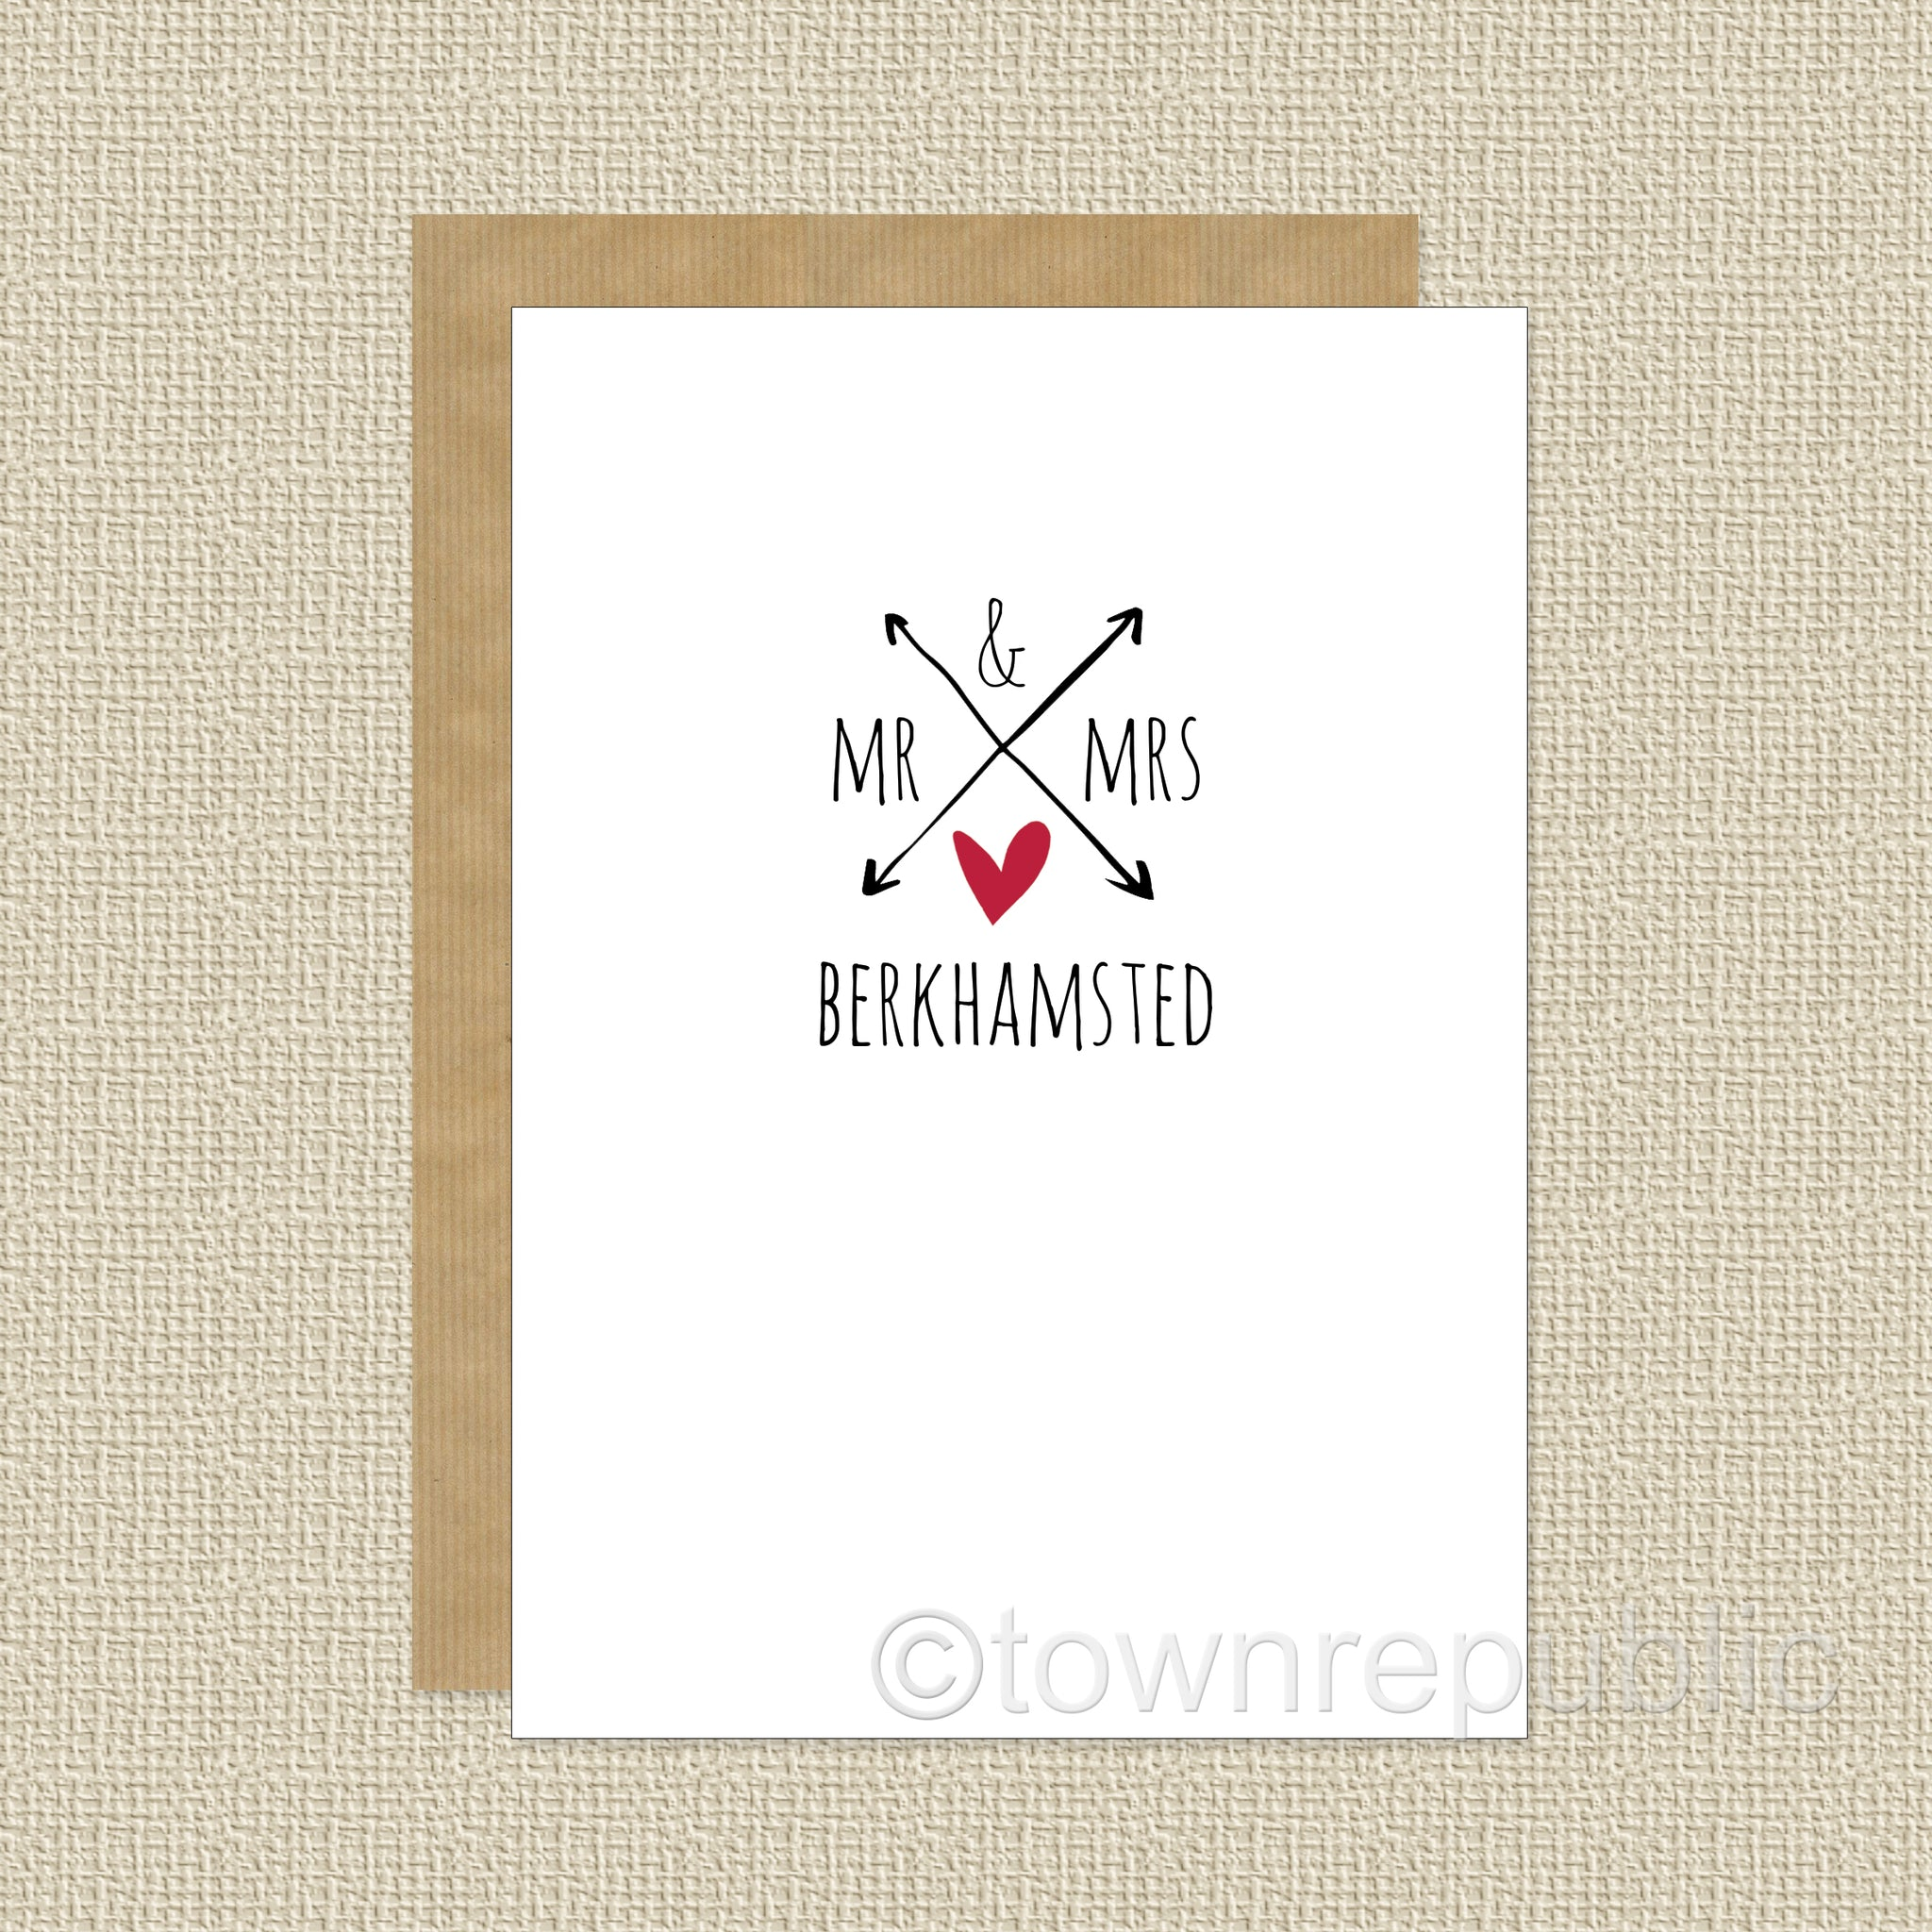 Greetings Card - Mr & Mrs Berkhamsted